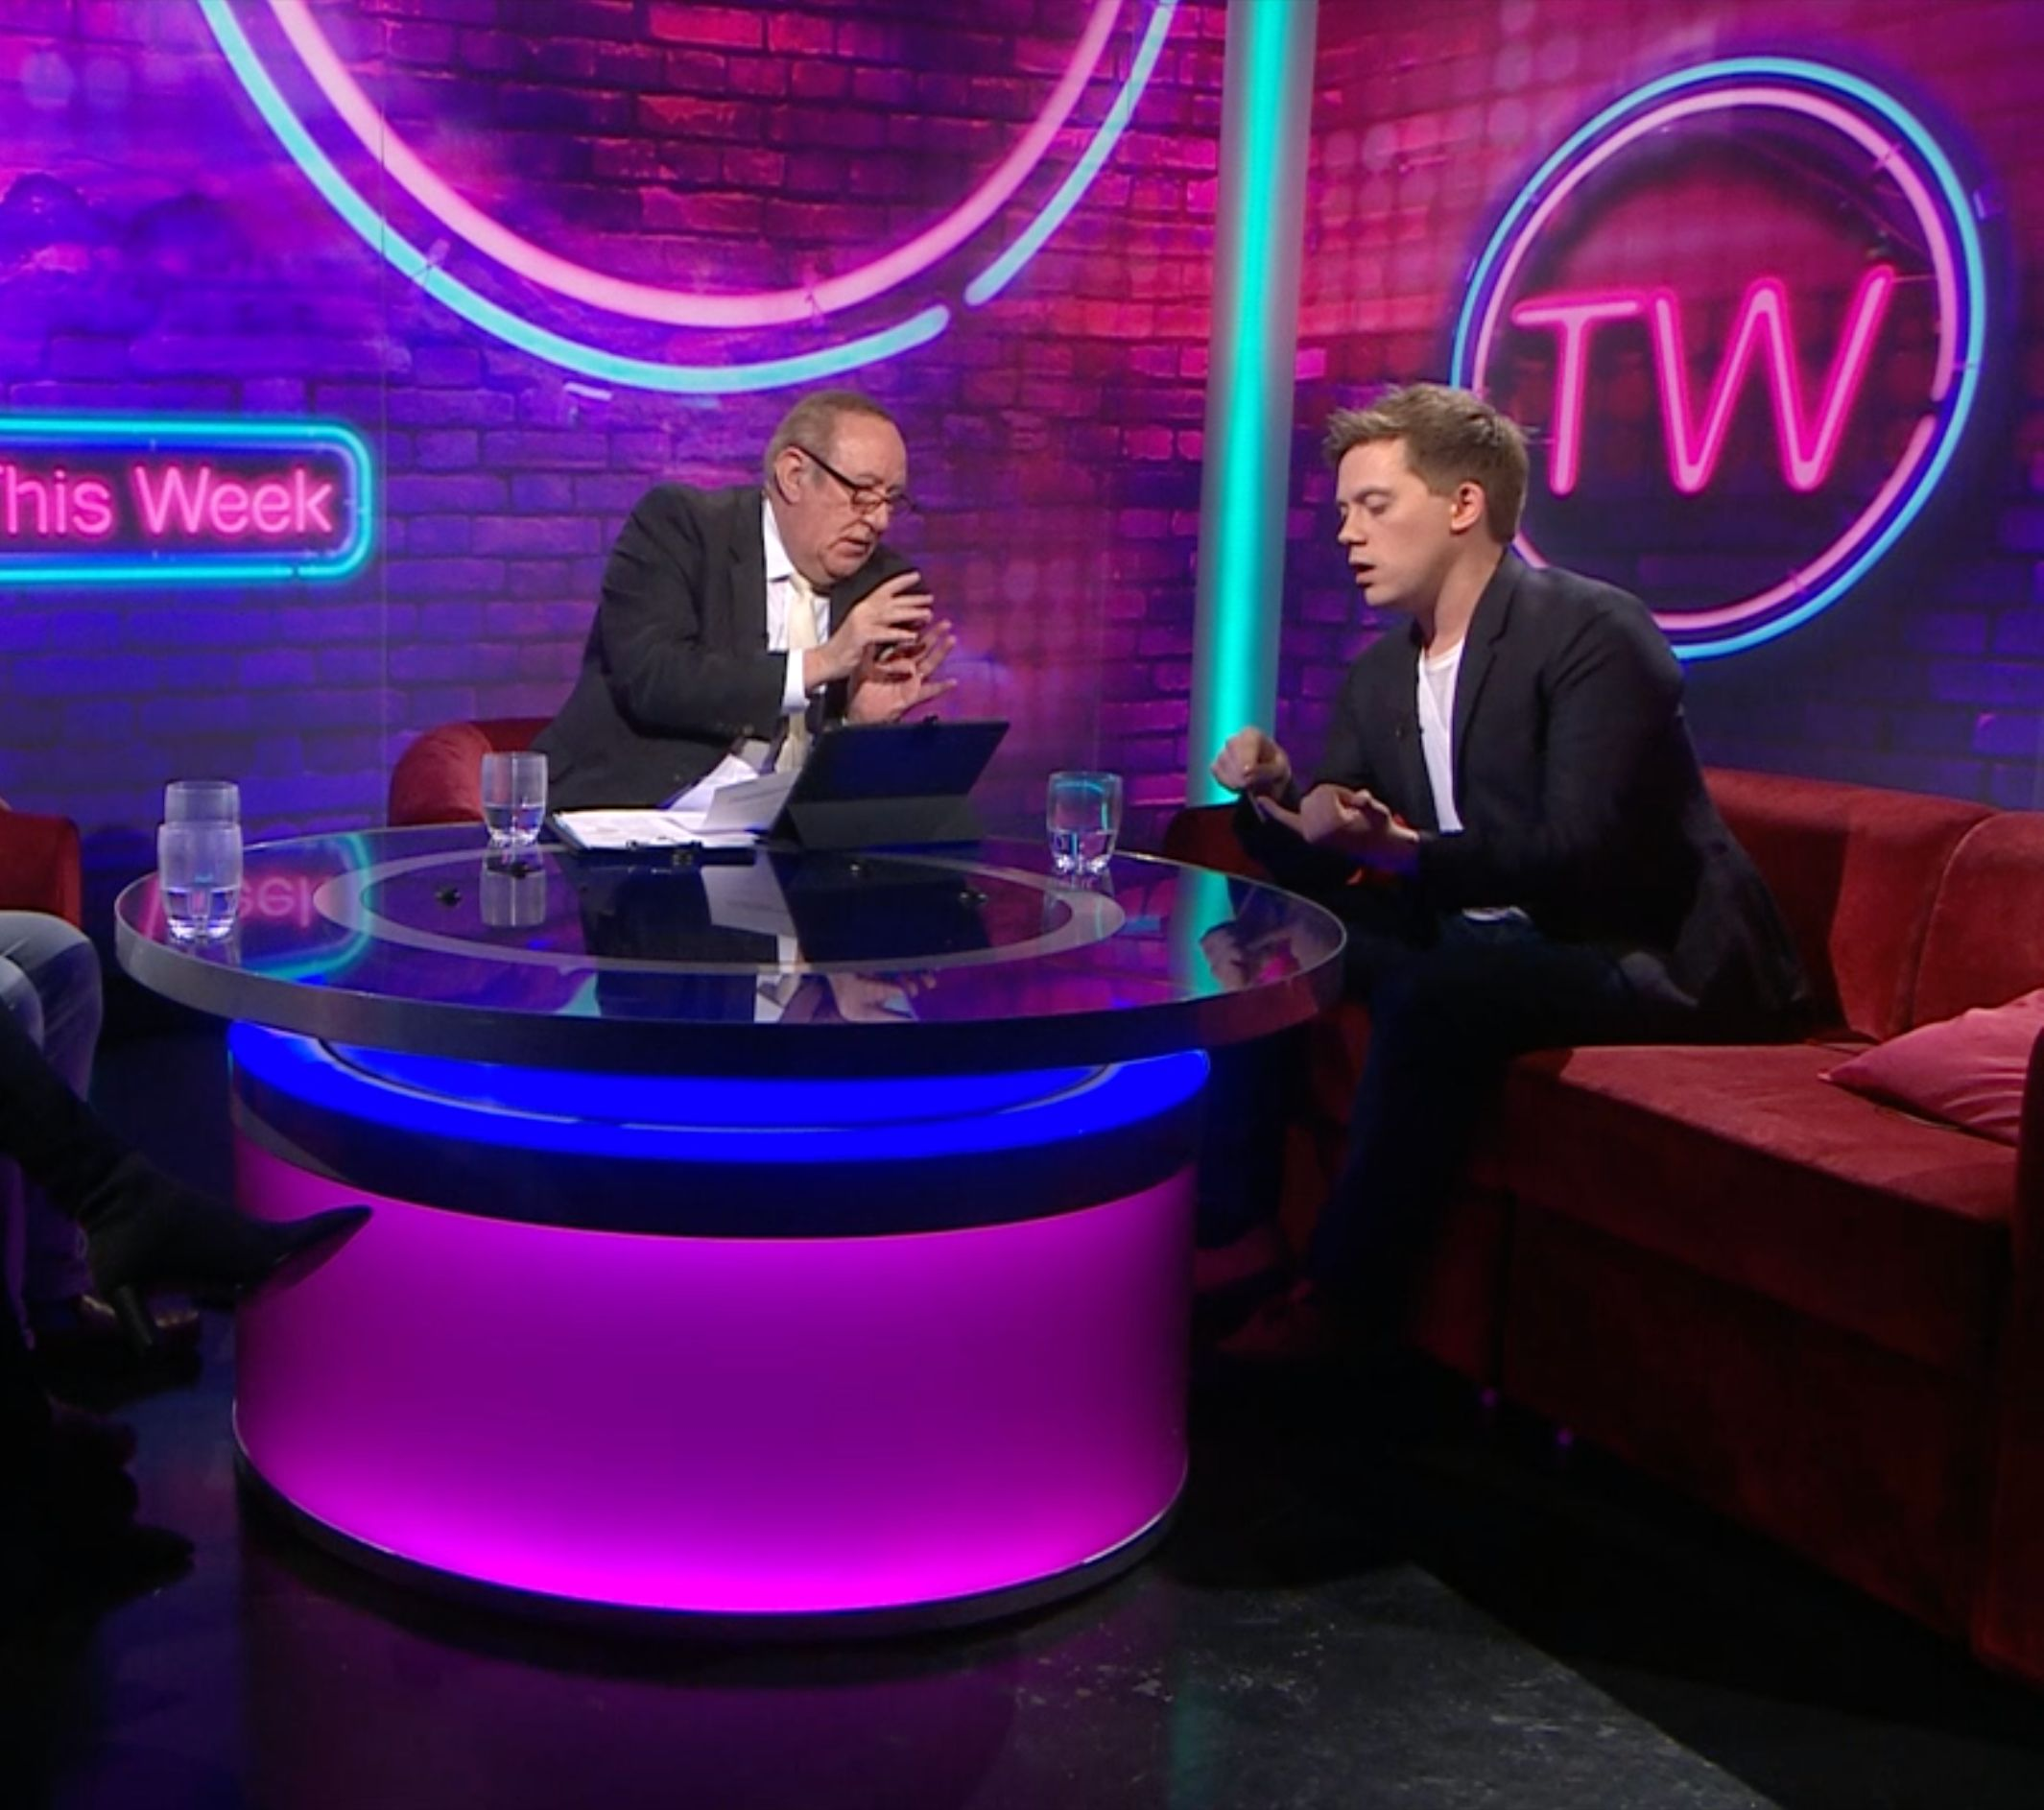 Stop What You're Doing And Watch Owen Jones' Spectacular Confrontation With Andrew